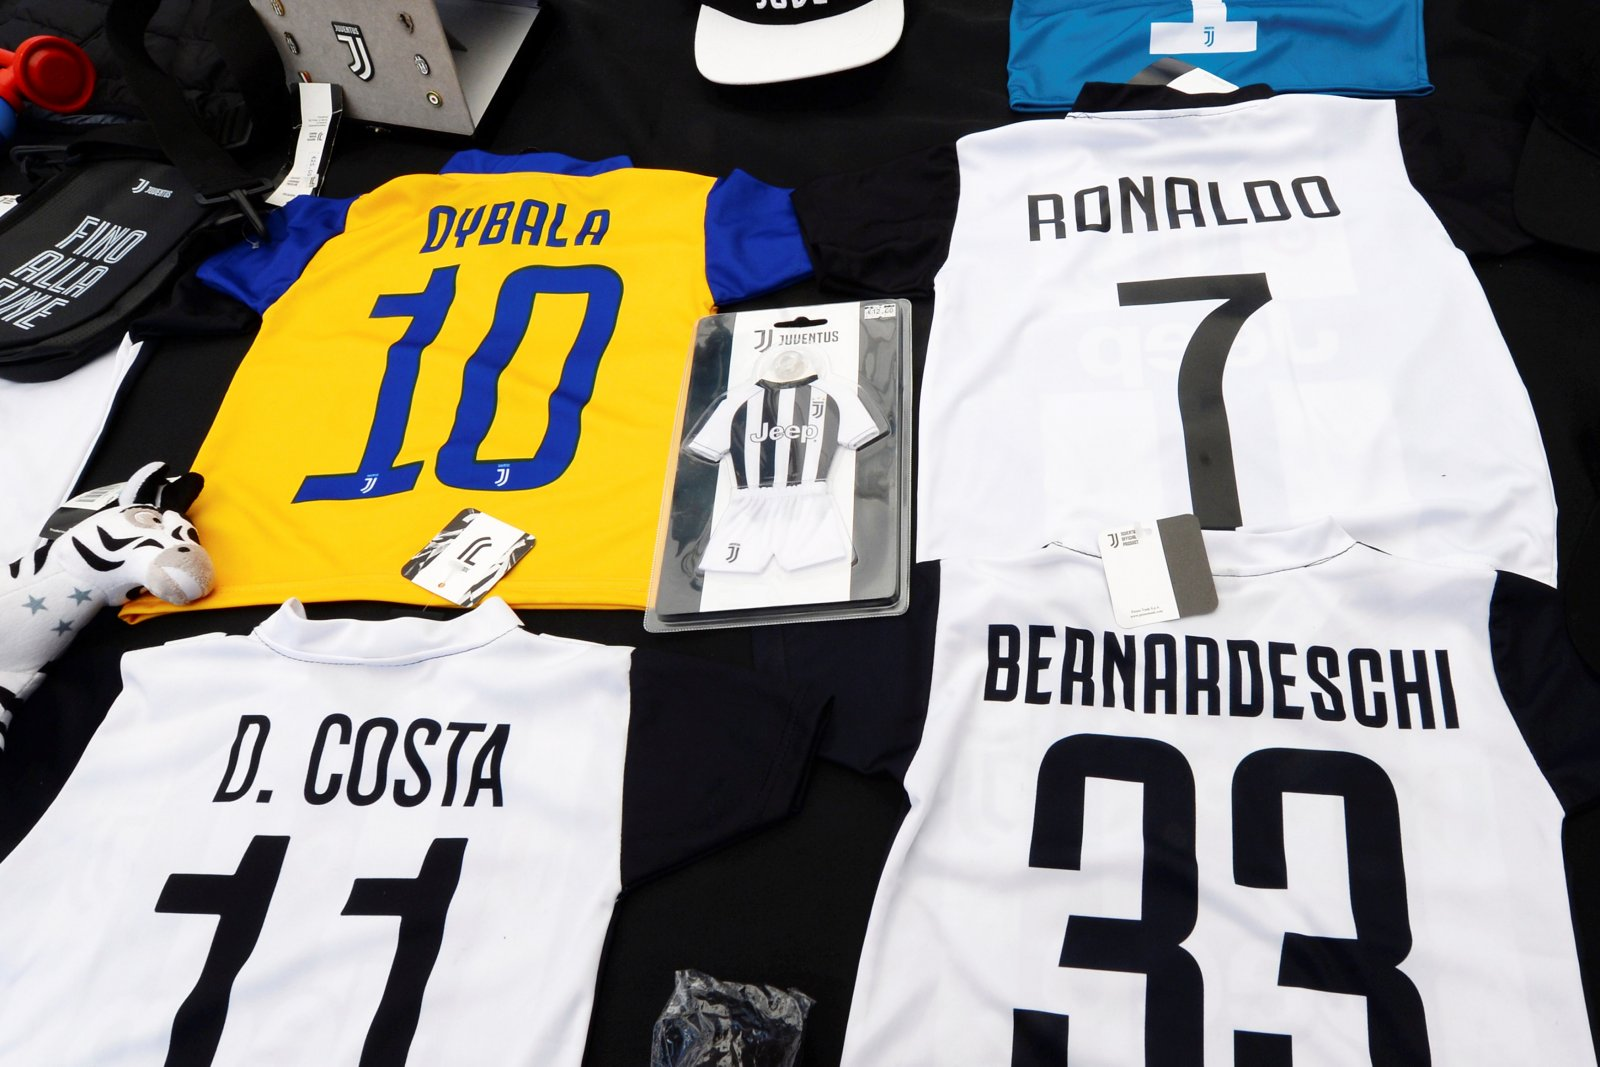 reputable site f6e8c be95d Signing Cristiano Ronaldo From Real Madrid signing helps ...